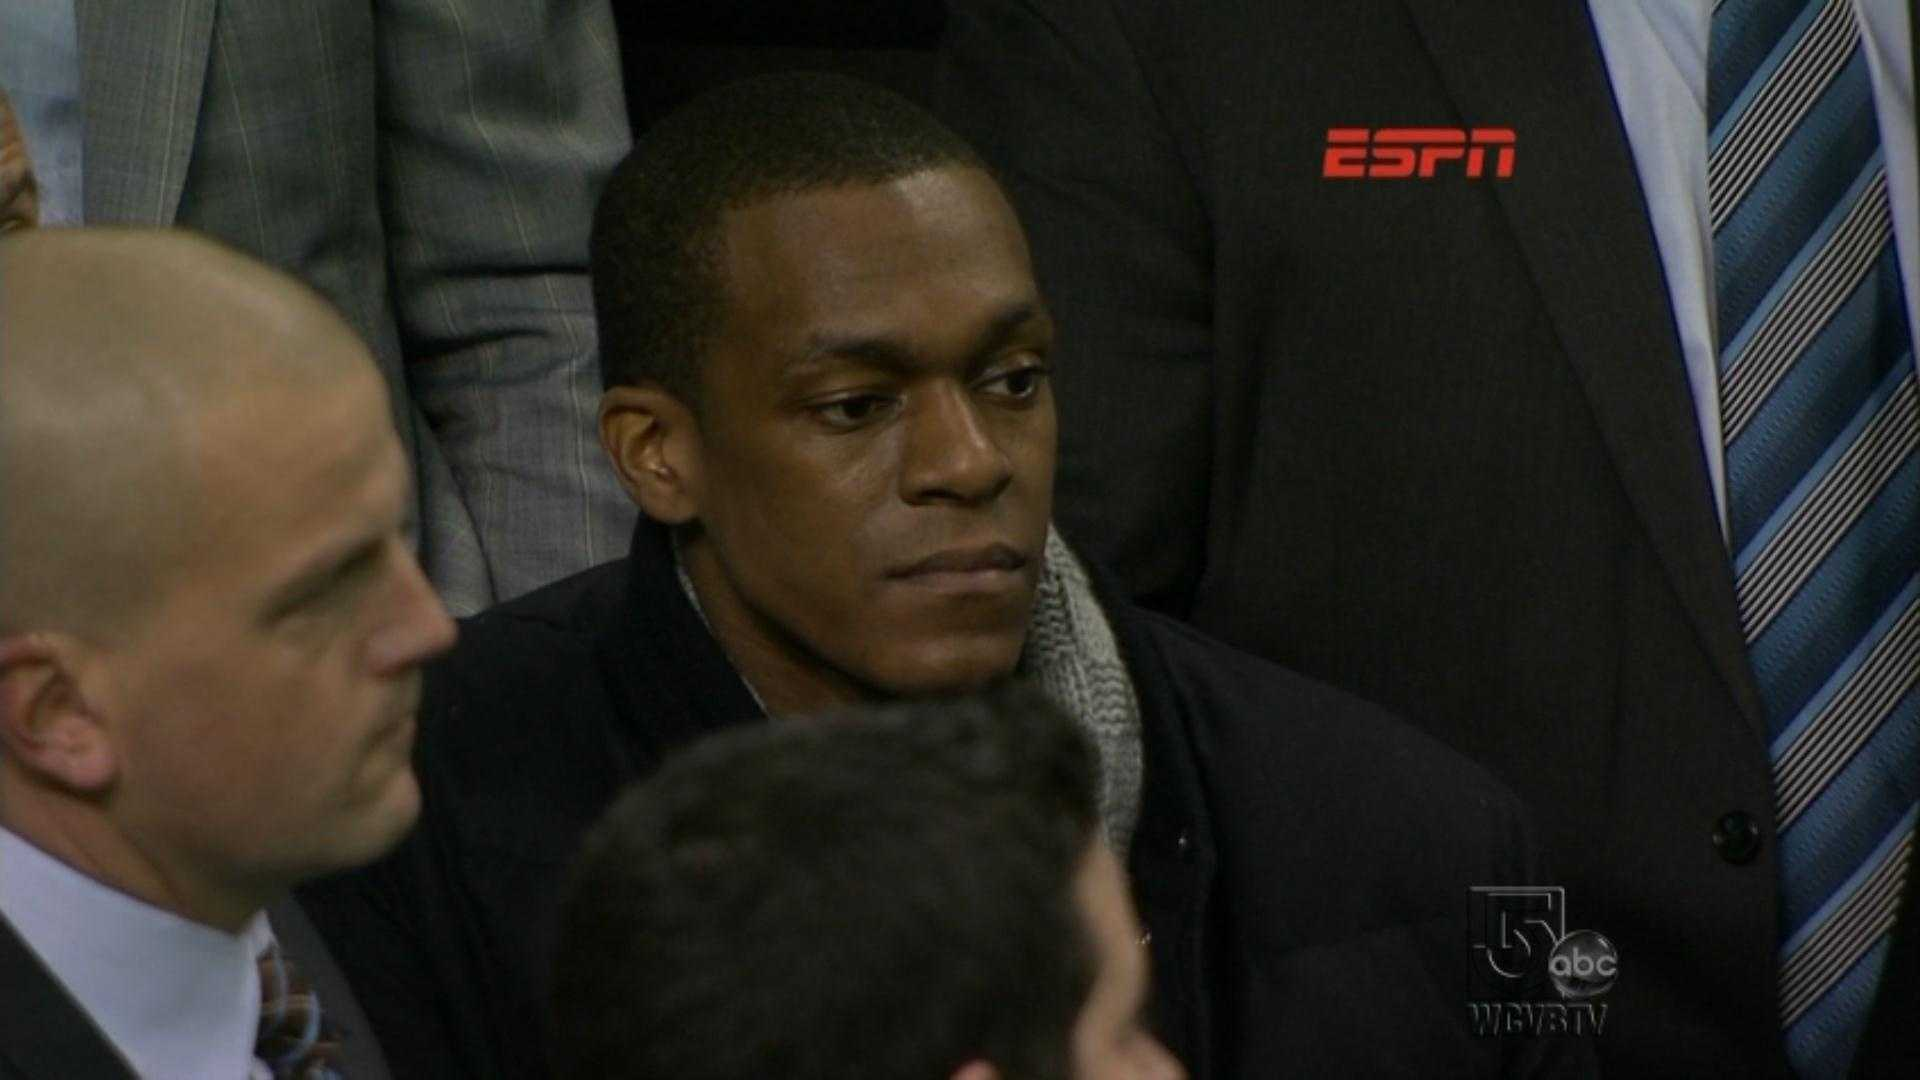 Rajon Rondo appears in the crowd of TD Garden after learning he tore his ACL before the Heat/Celtics game Sunday, January 27, 2013.